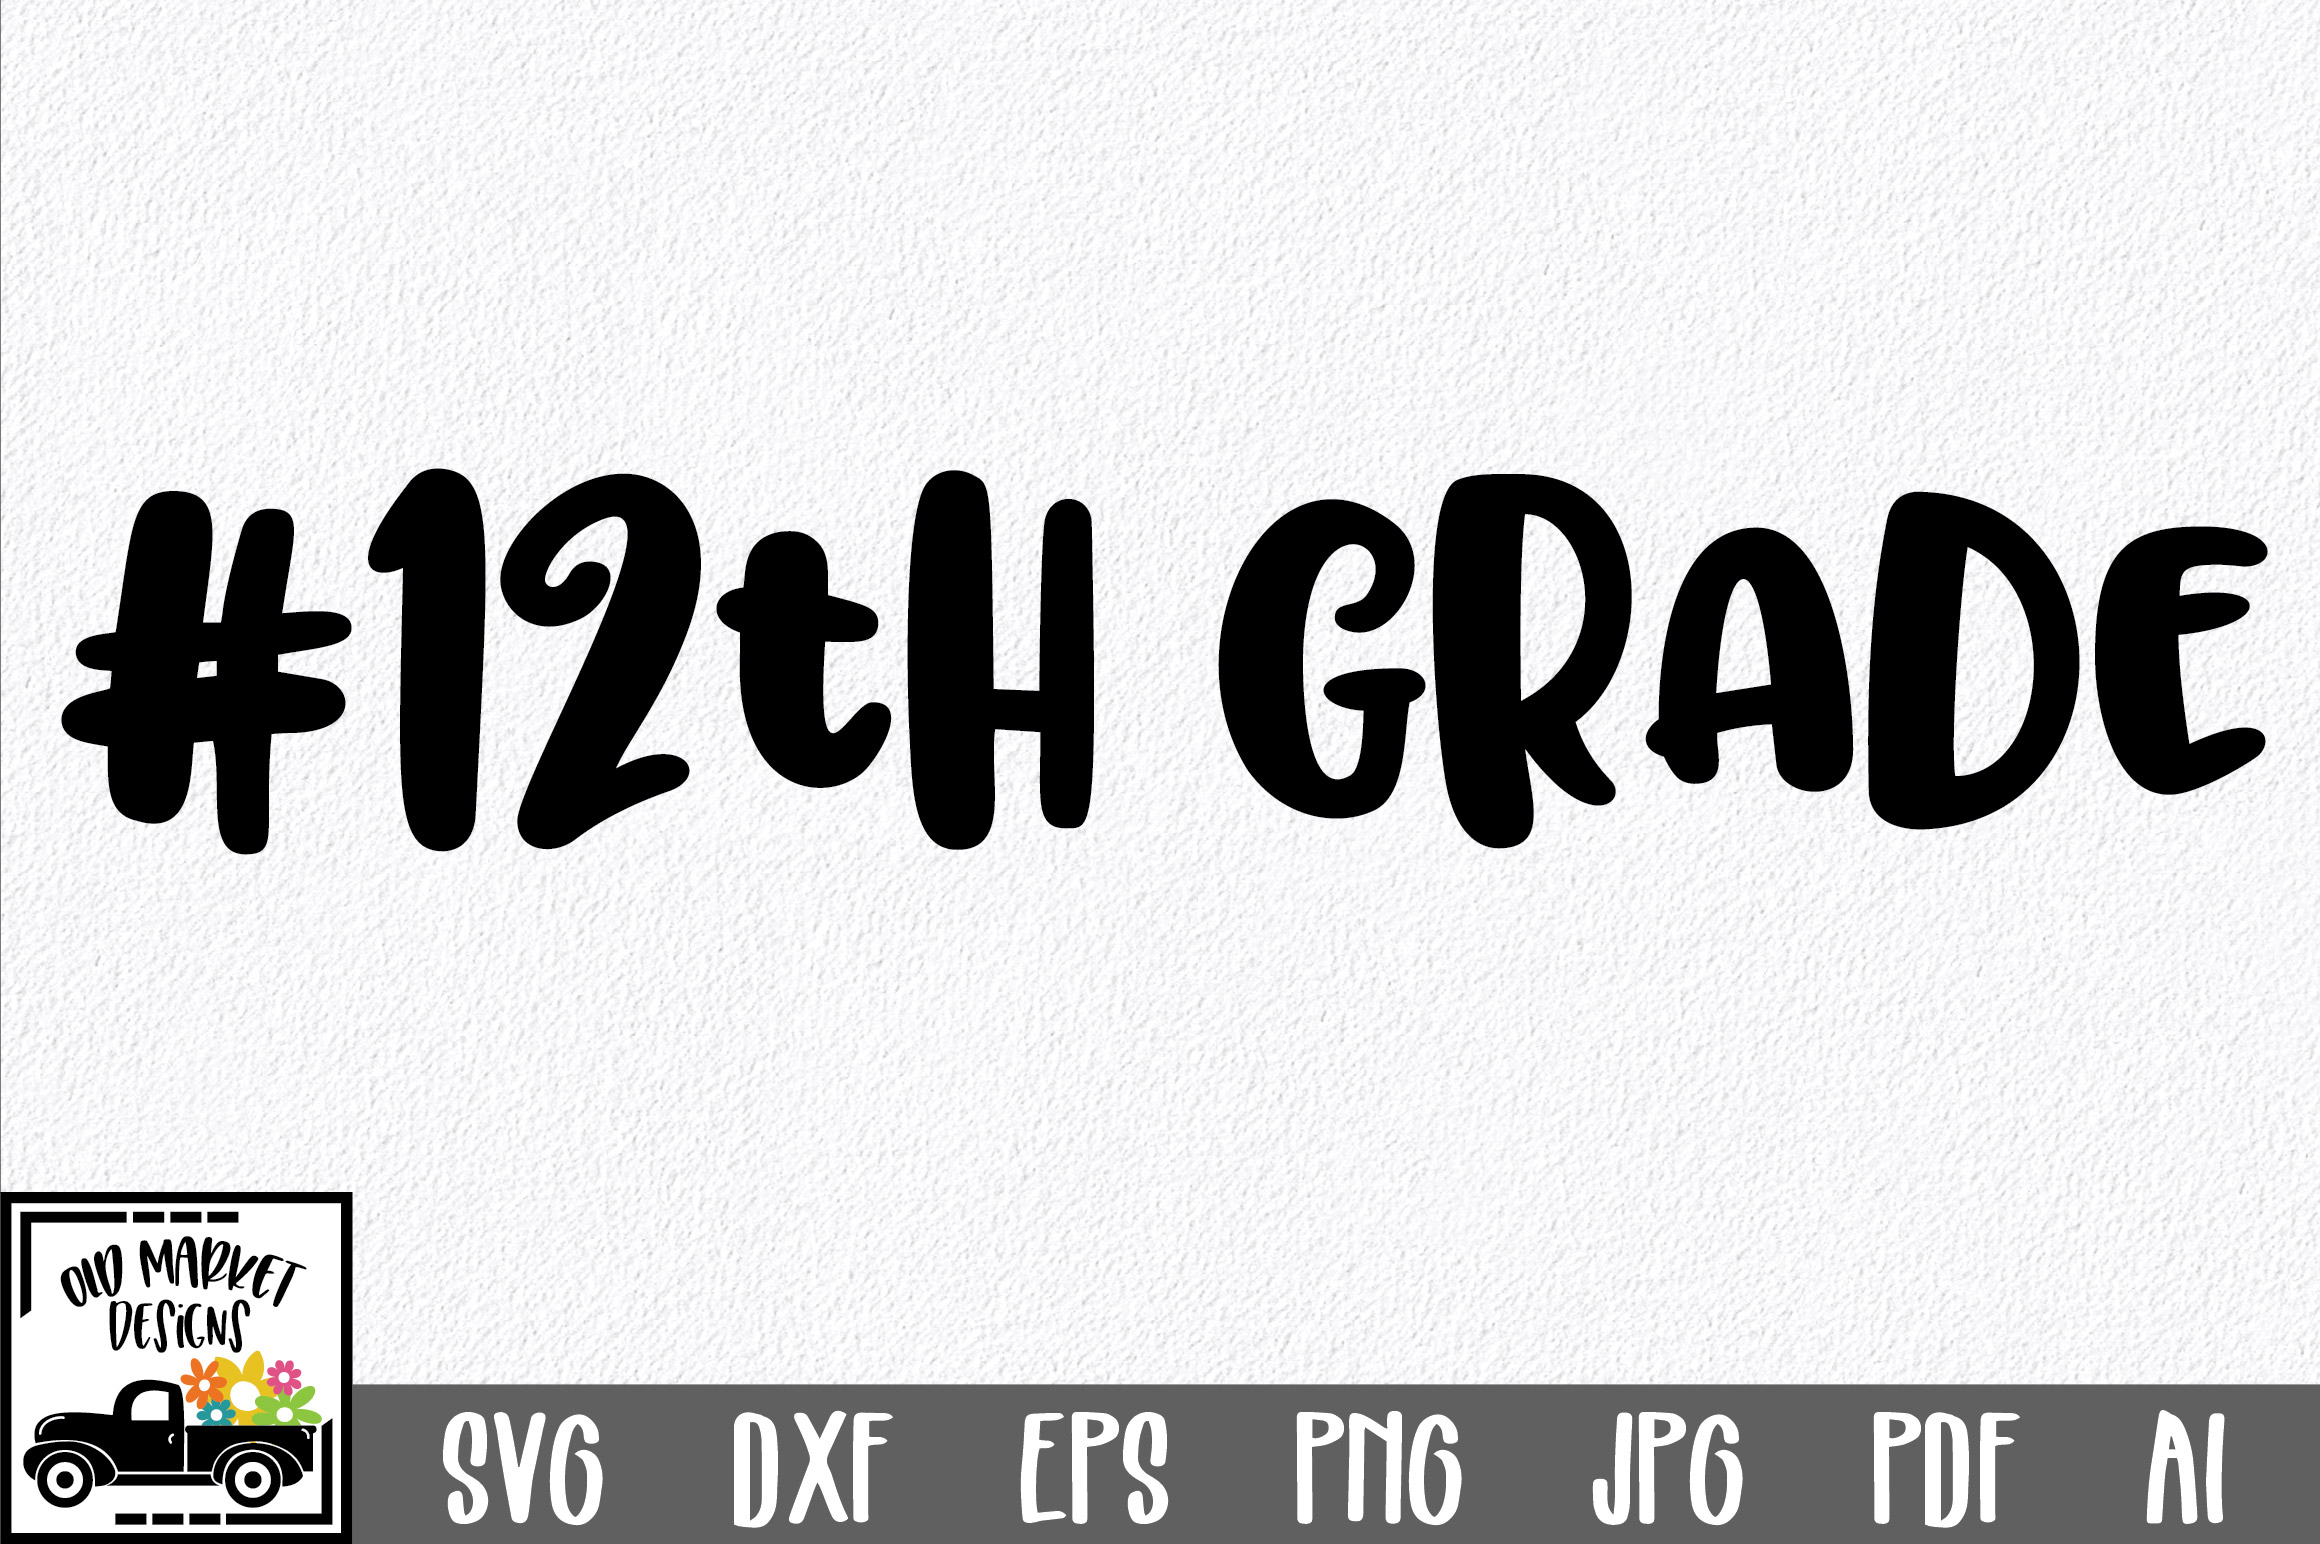 Download Free 12th Grade Cut File Graphic By Oldmarketdesigns Creative Fabrica for Cricut Explore, Silhouette and other cutting machines.